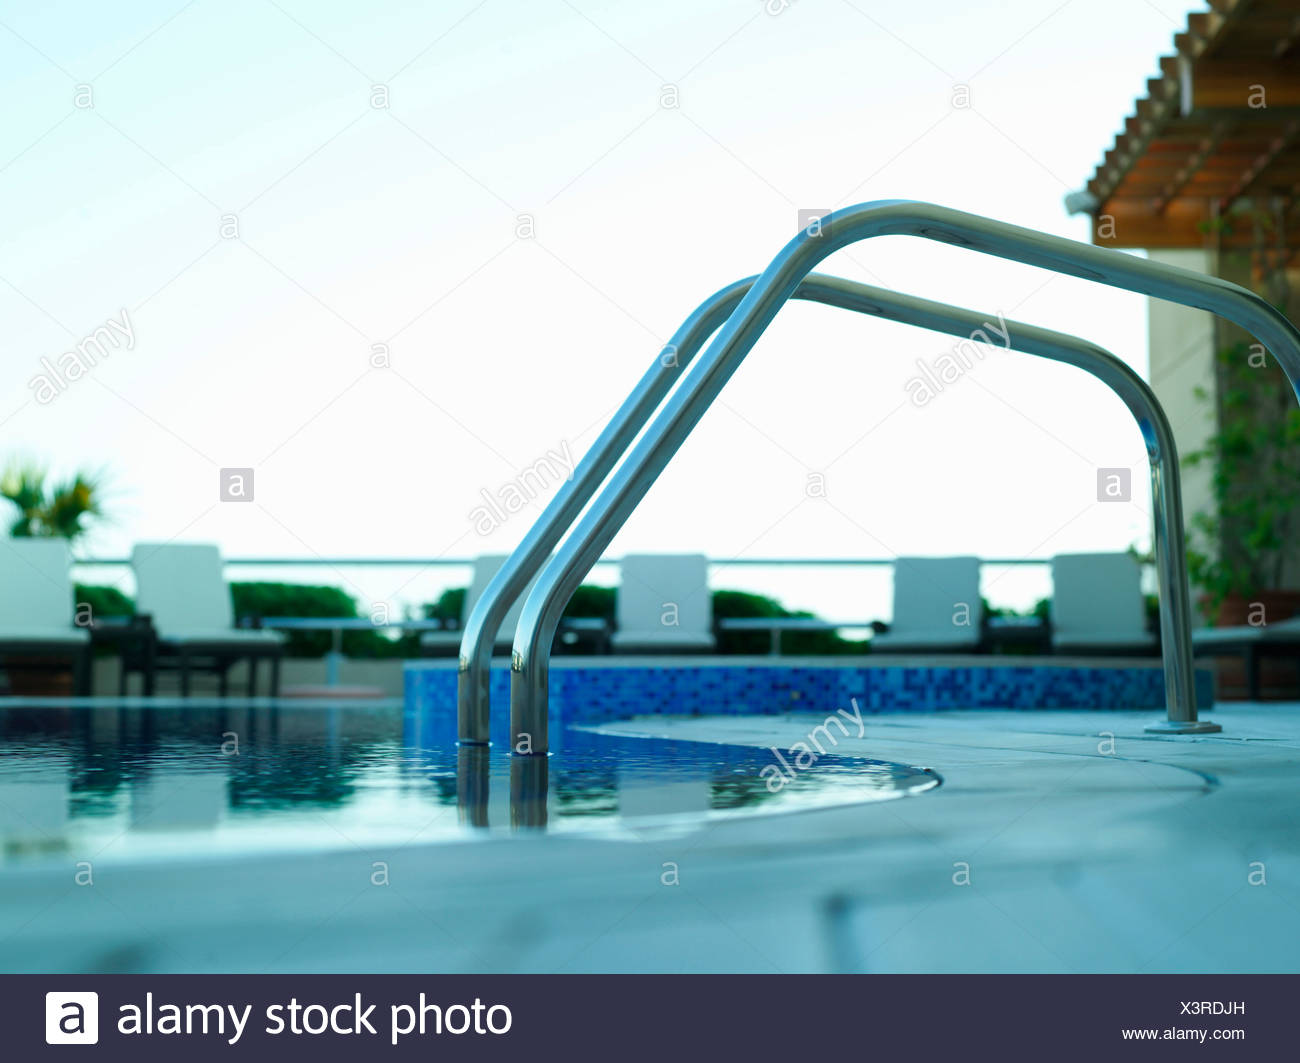 Dayshot view of Swimming Pool. - Stock Image